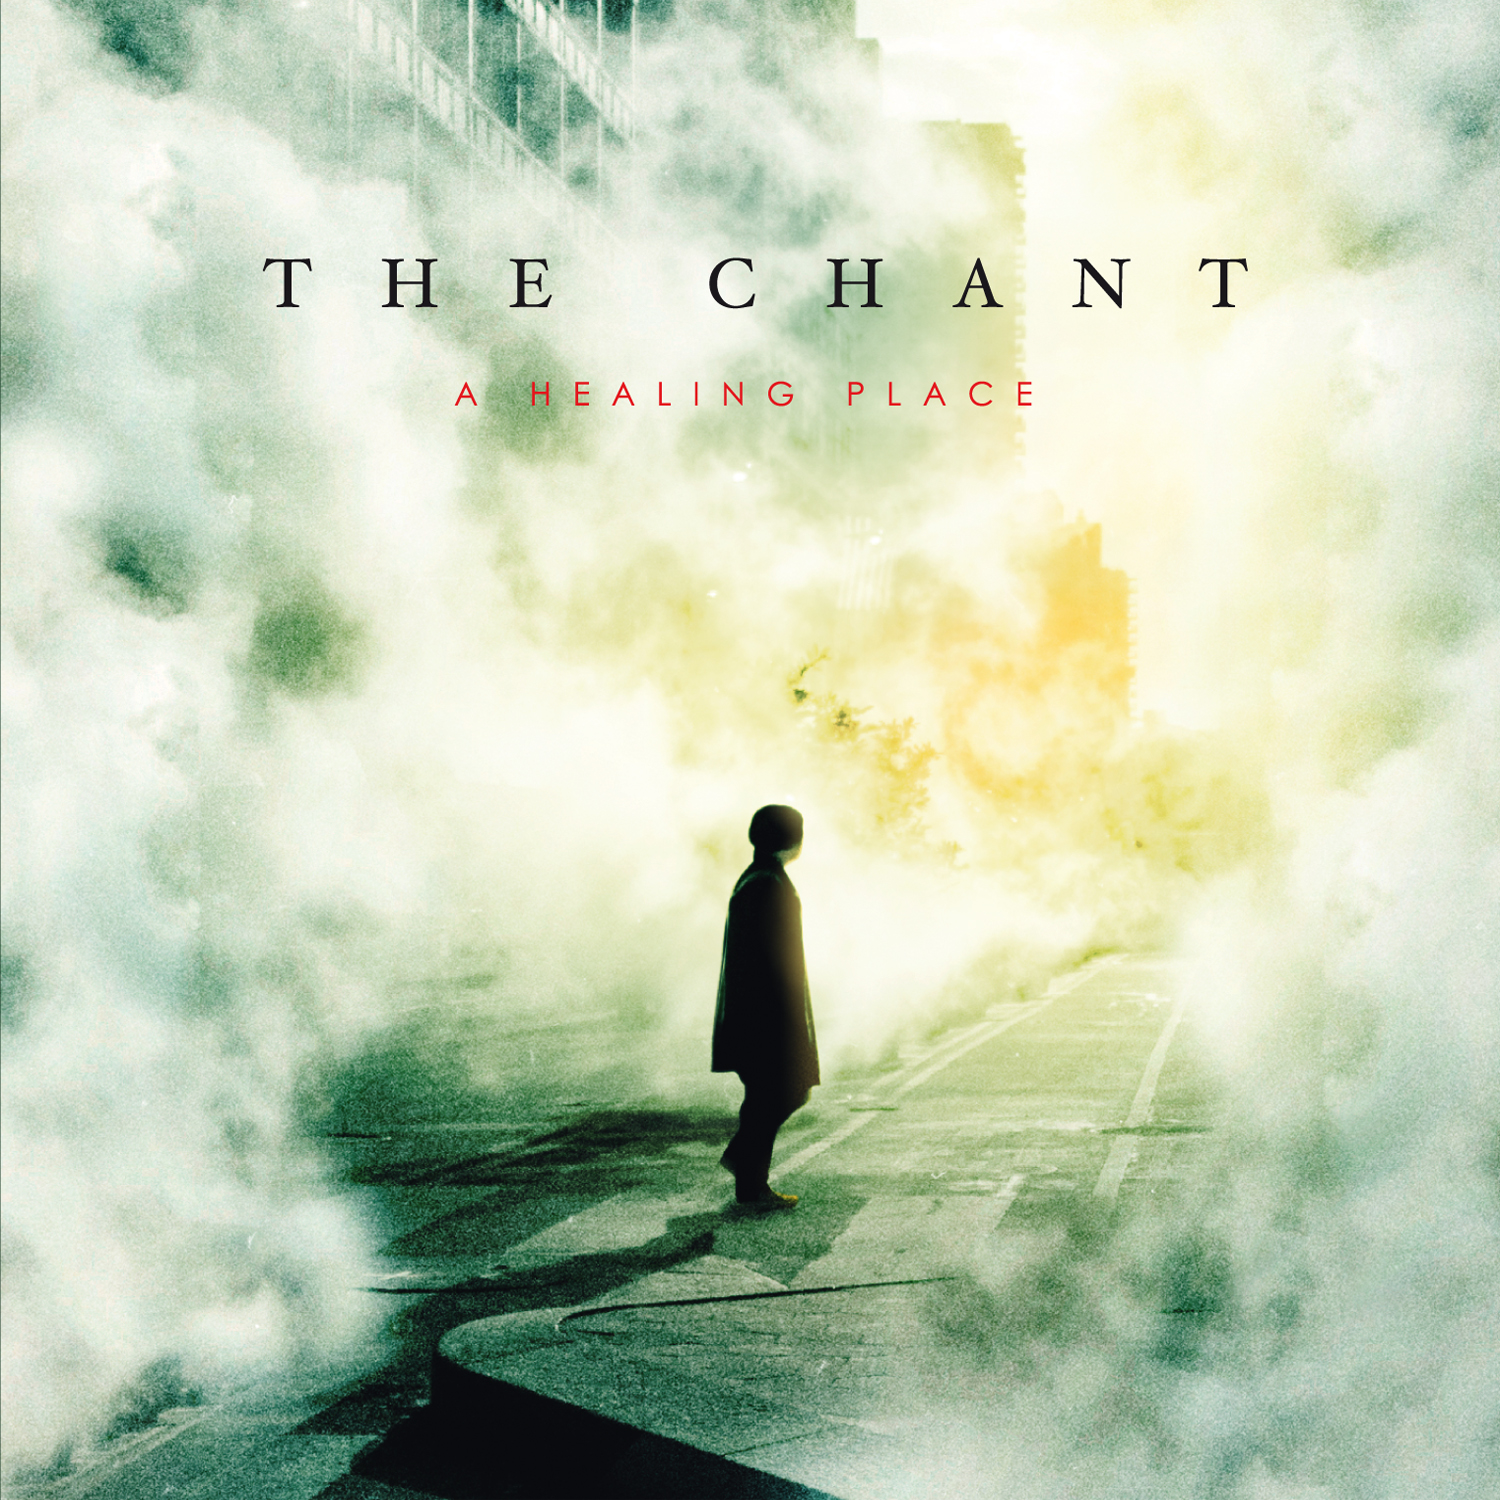 The Chant – A Healing Place Review